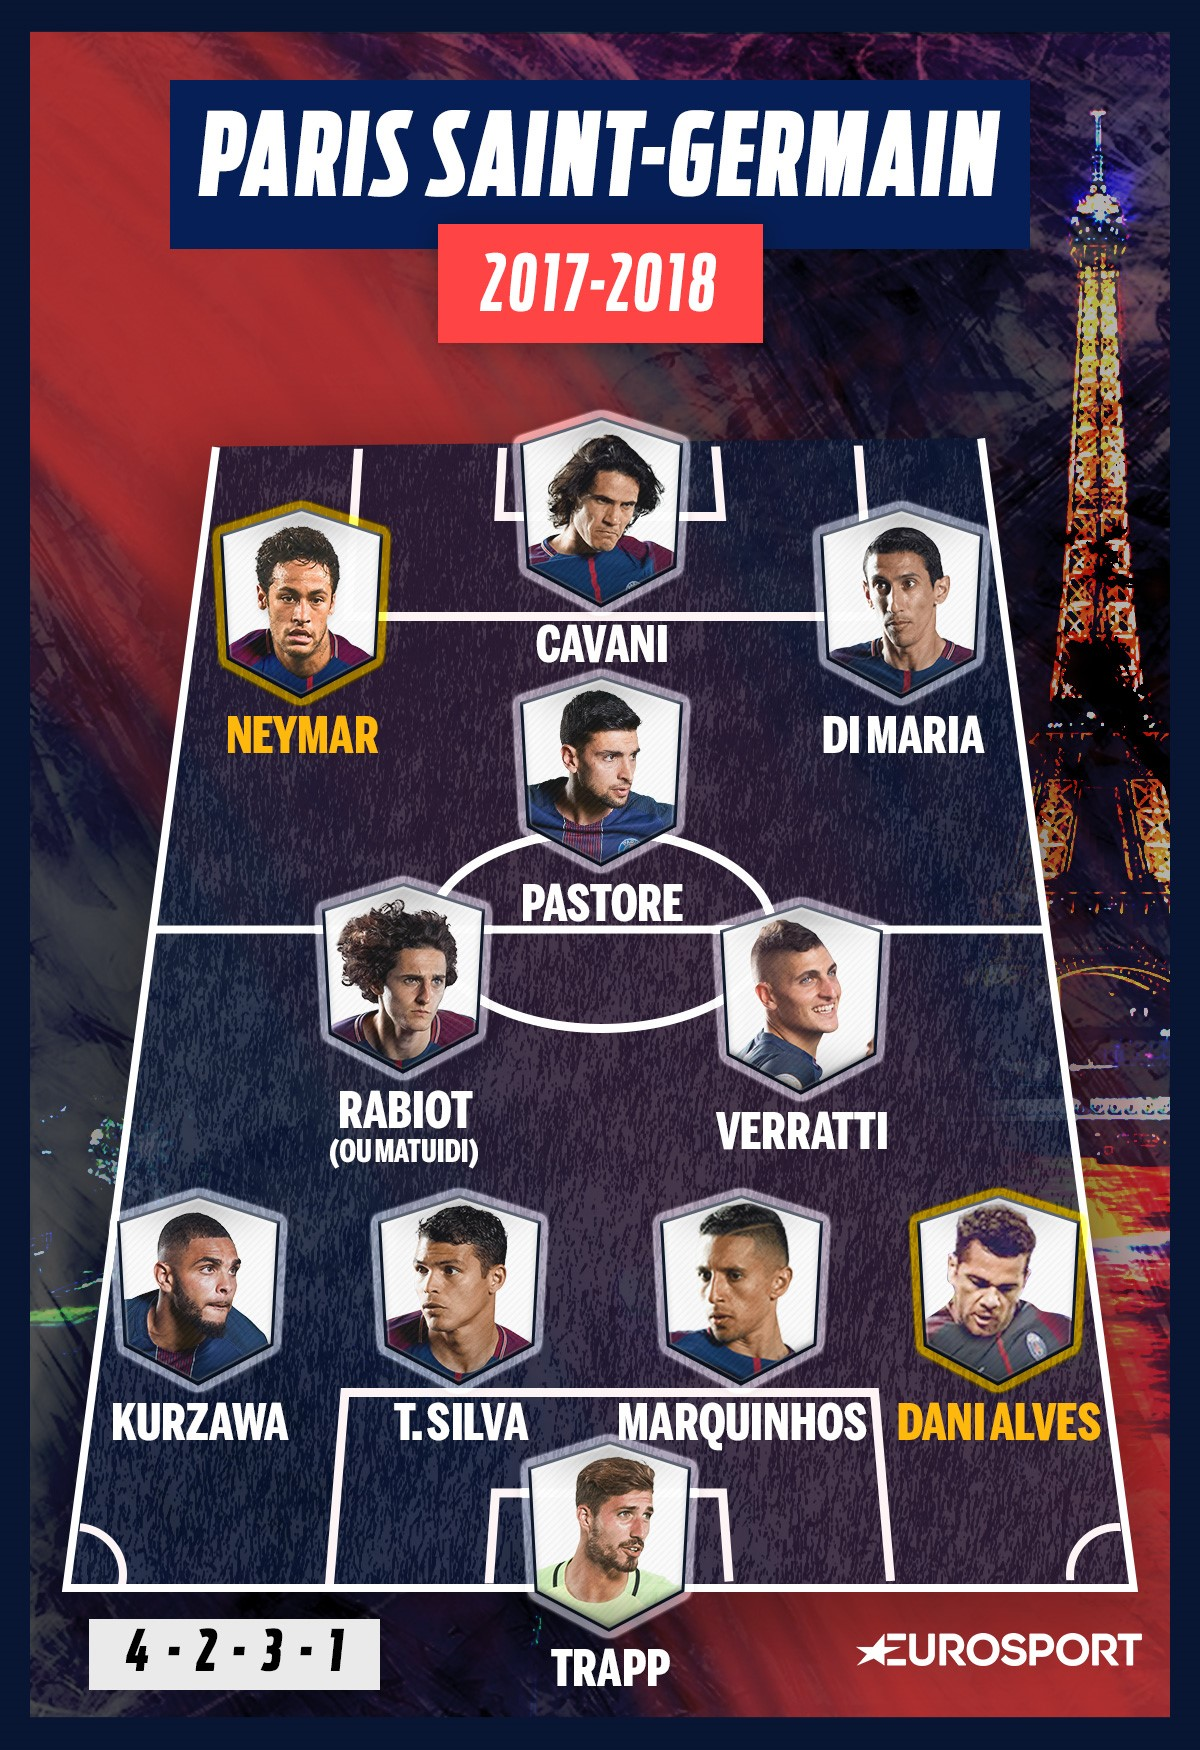 La compo possible du PSG en 4-2-3-1